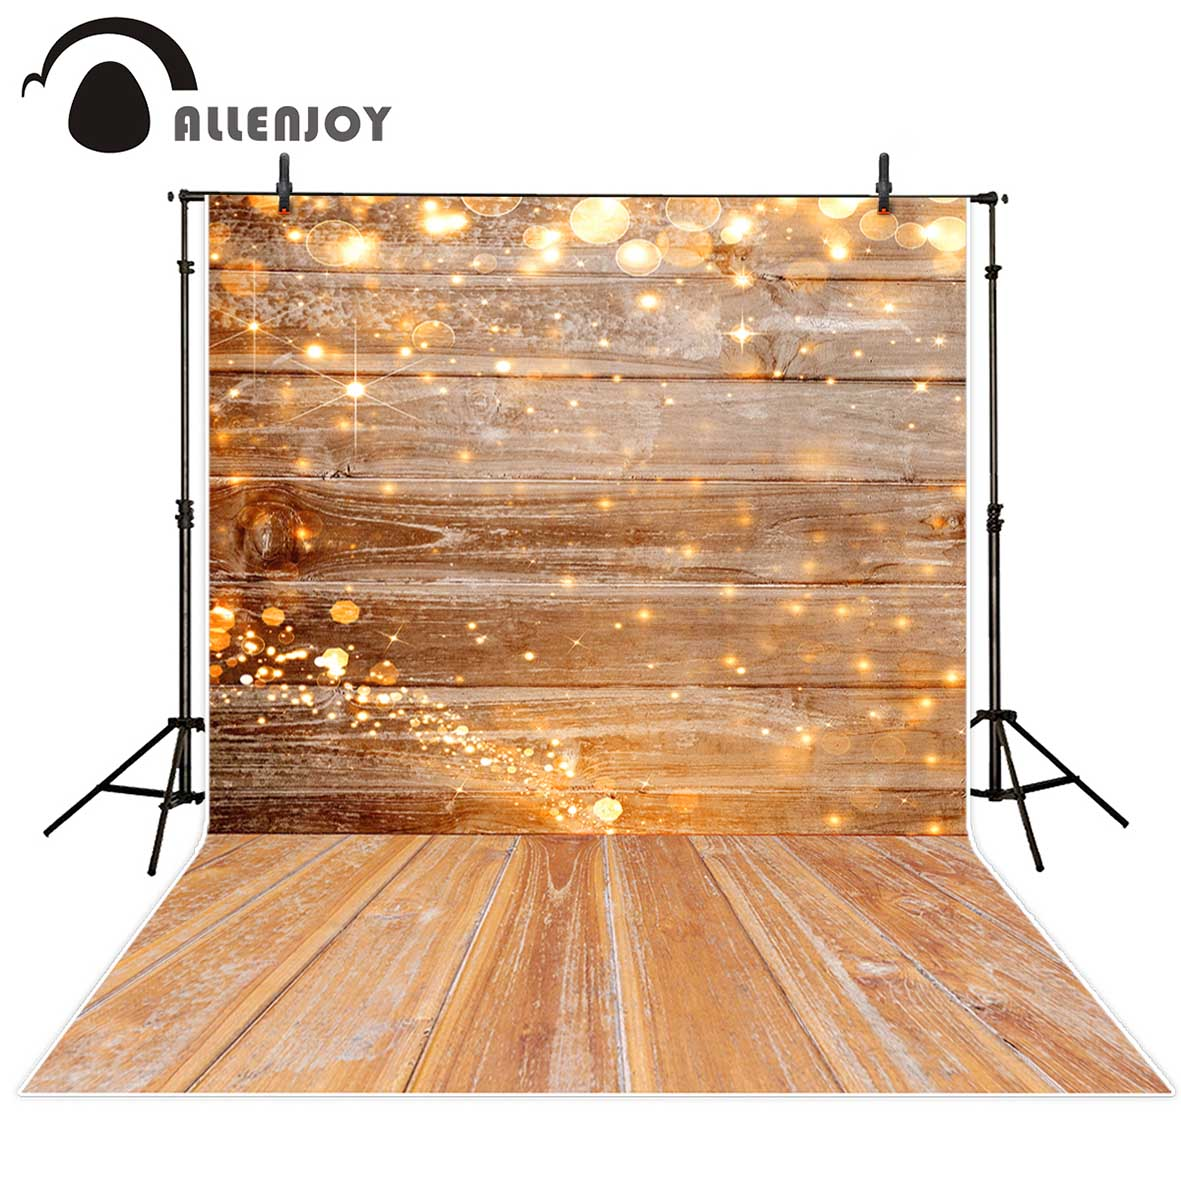 Allenjoy photography backdrop yellow halo wood christmas decor background photobooth photo studio decoration photo shoot allenjoy wedding custom photography backdrop photo studio wood party decor celebrate background photocall photobooth photocall